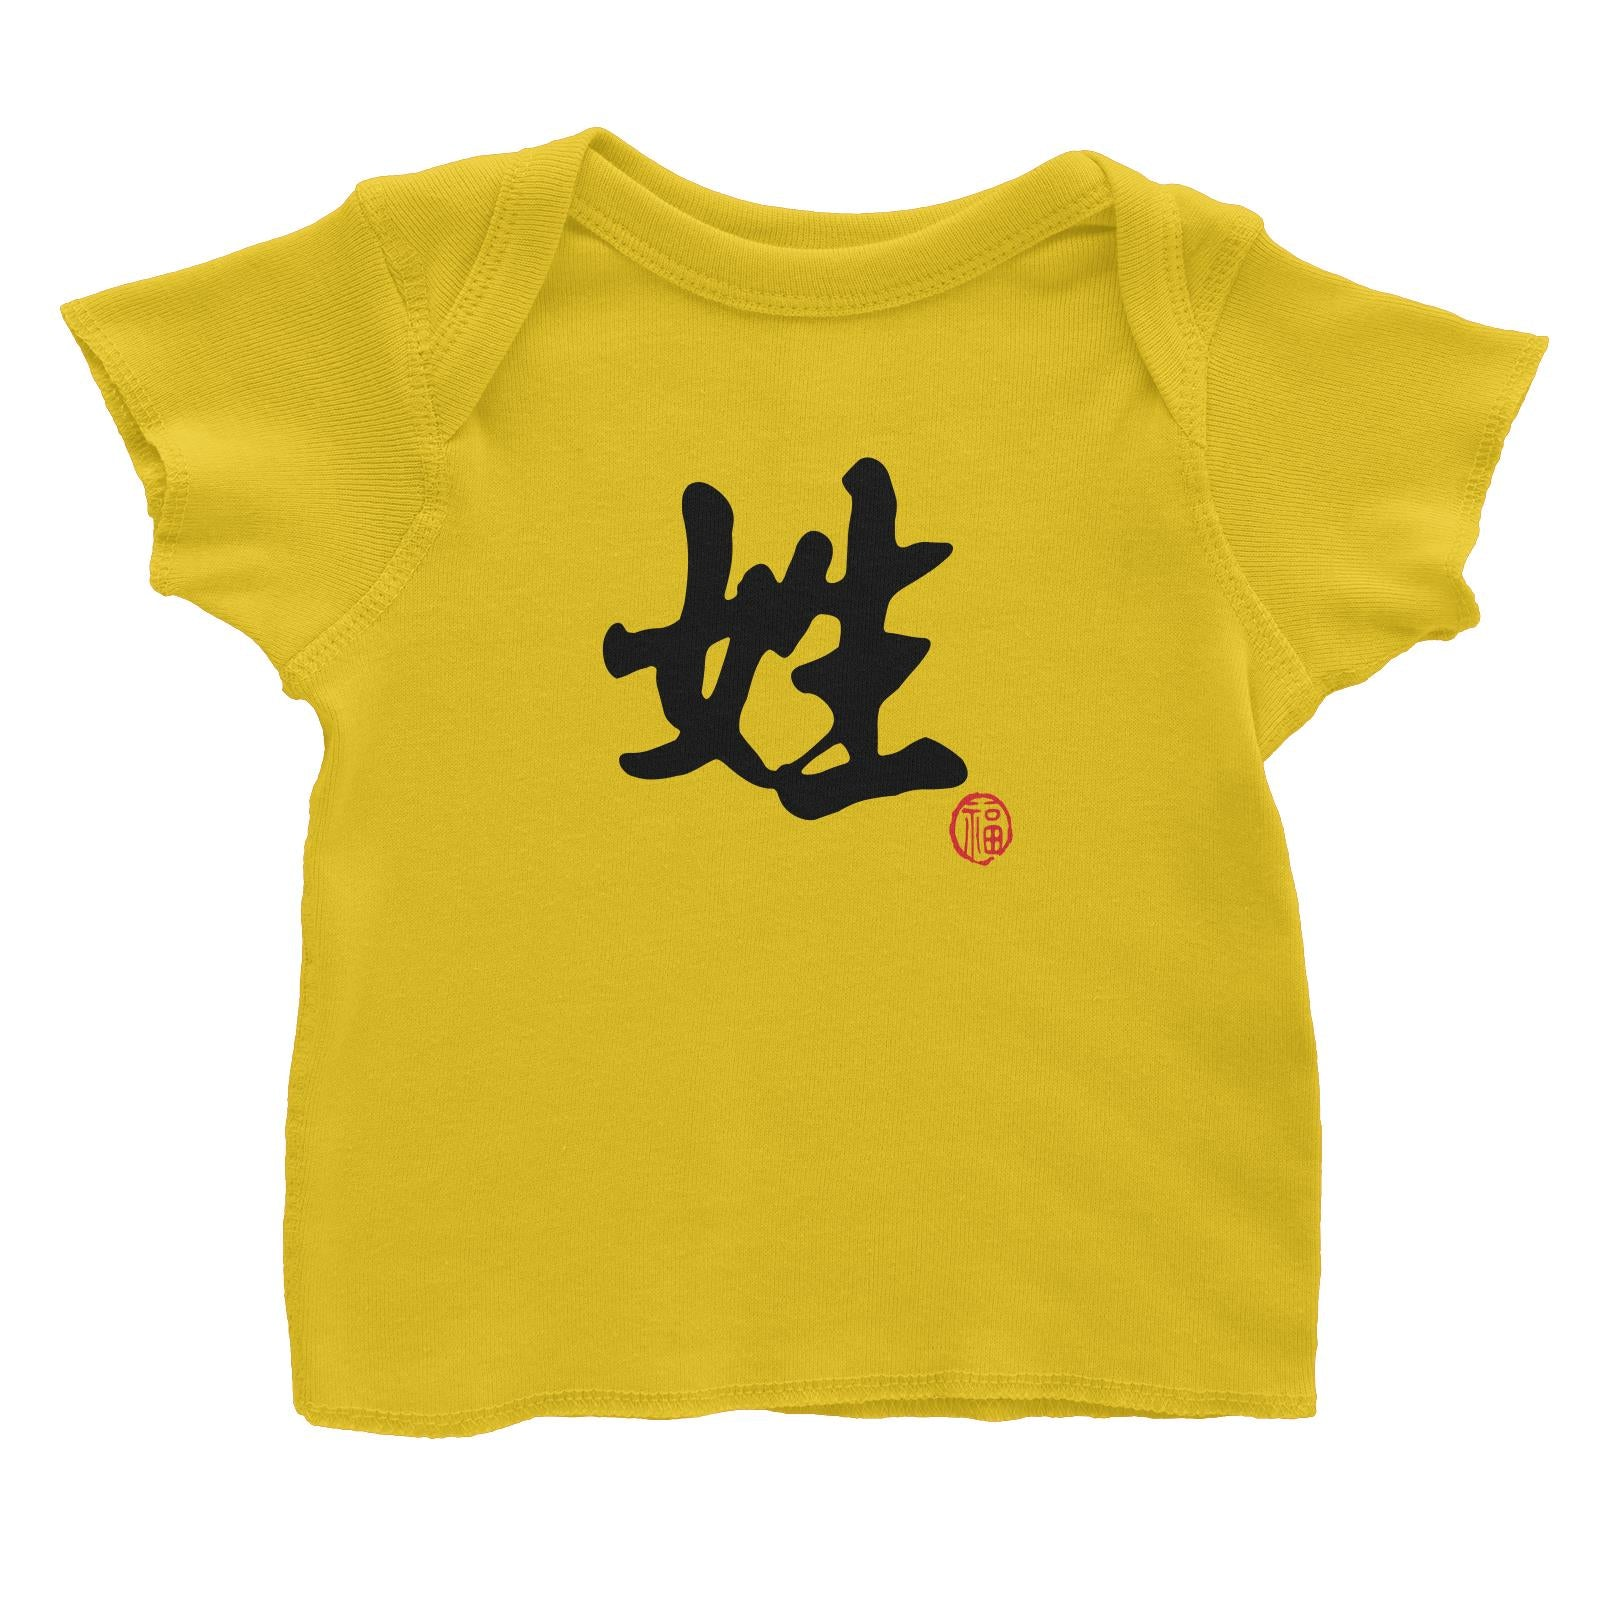 Chinese Surname B&W with Prosperity Seal Baby T-Shirt Matching Family Personalizable Designs